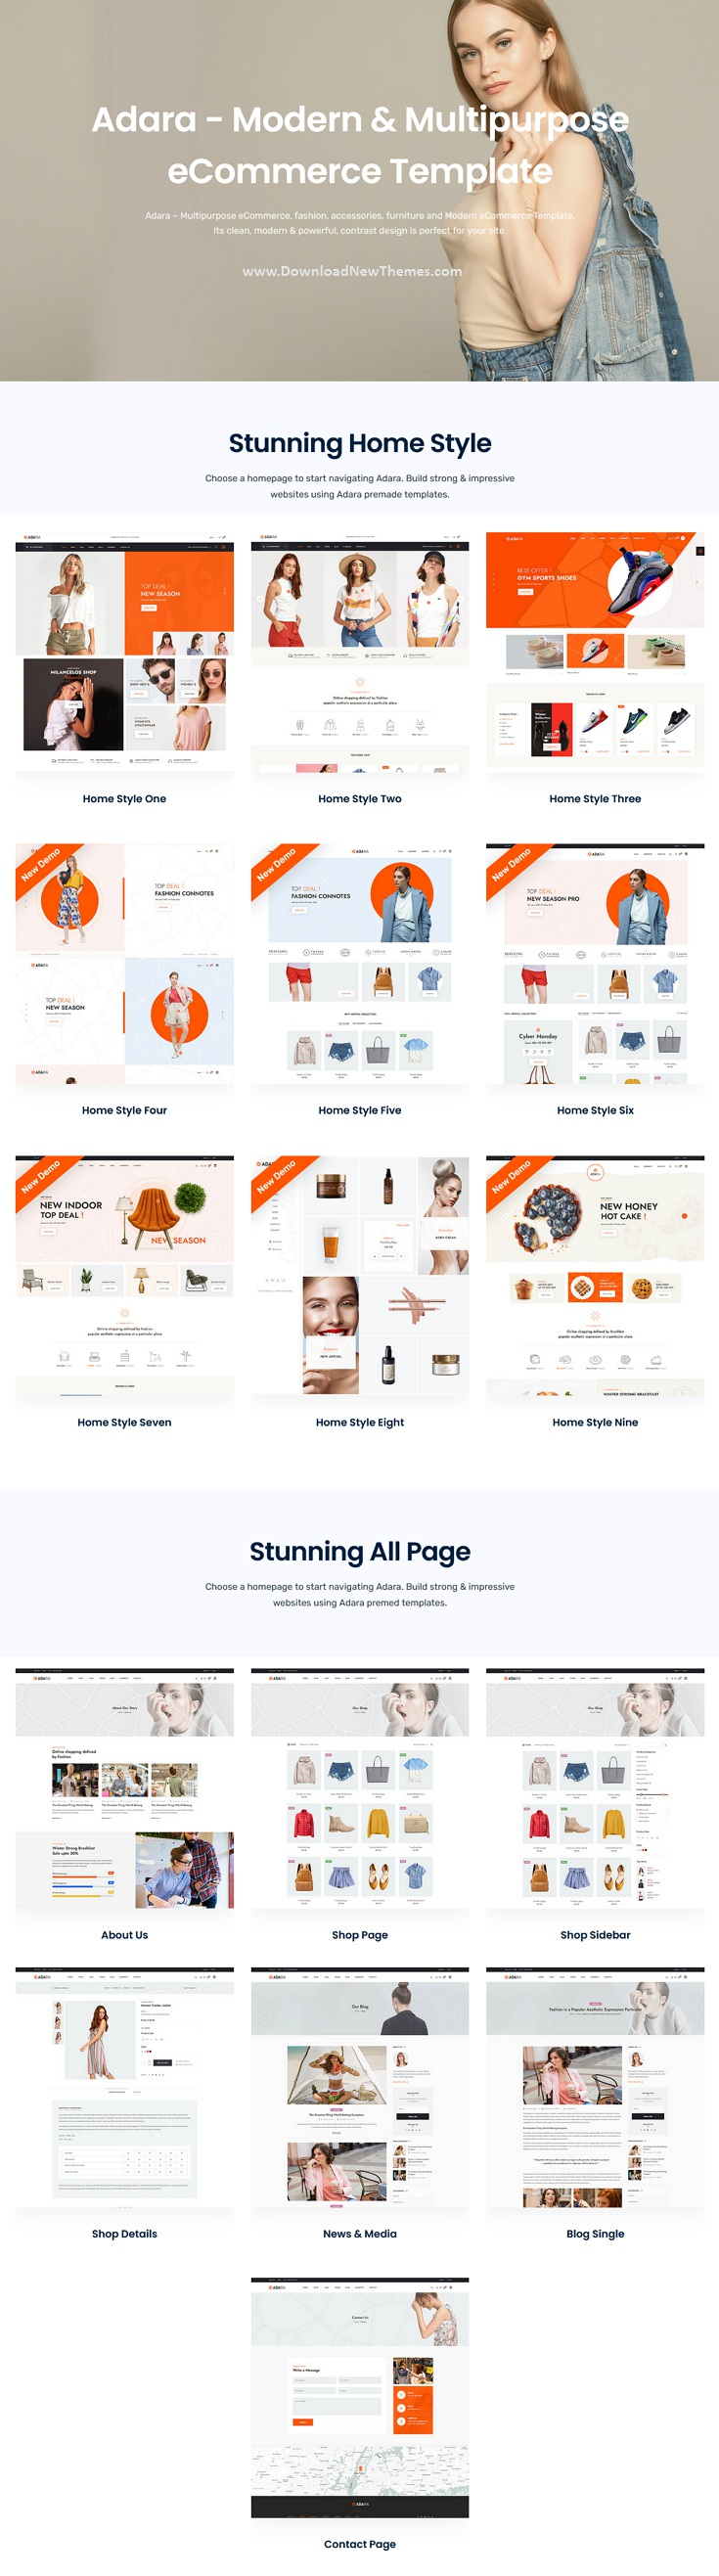 Modern and Multipurpose eCommerce Template